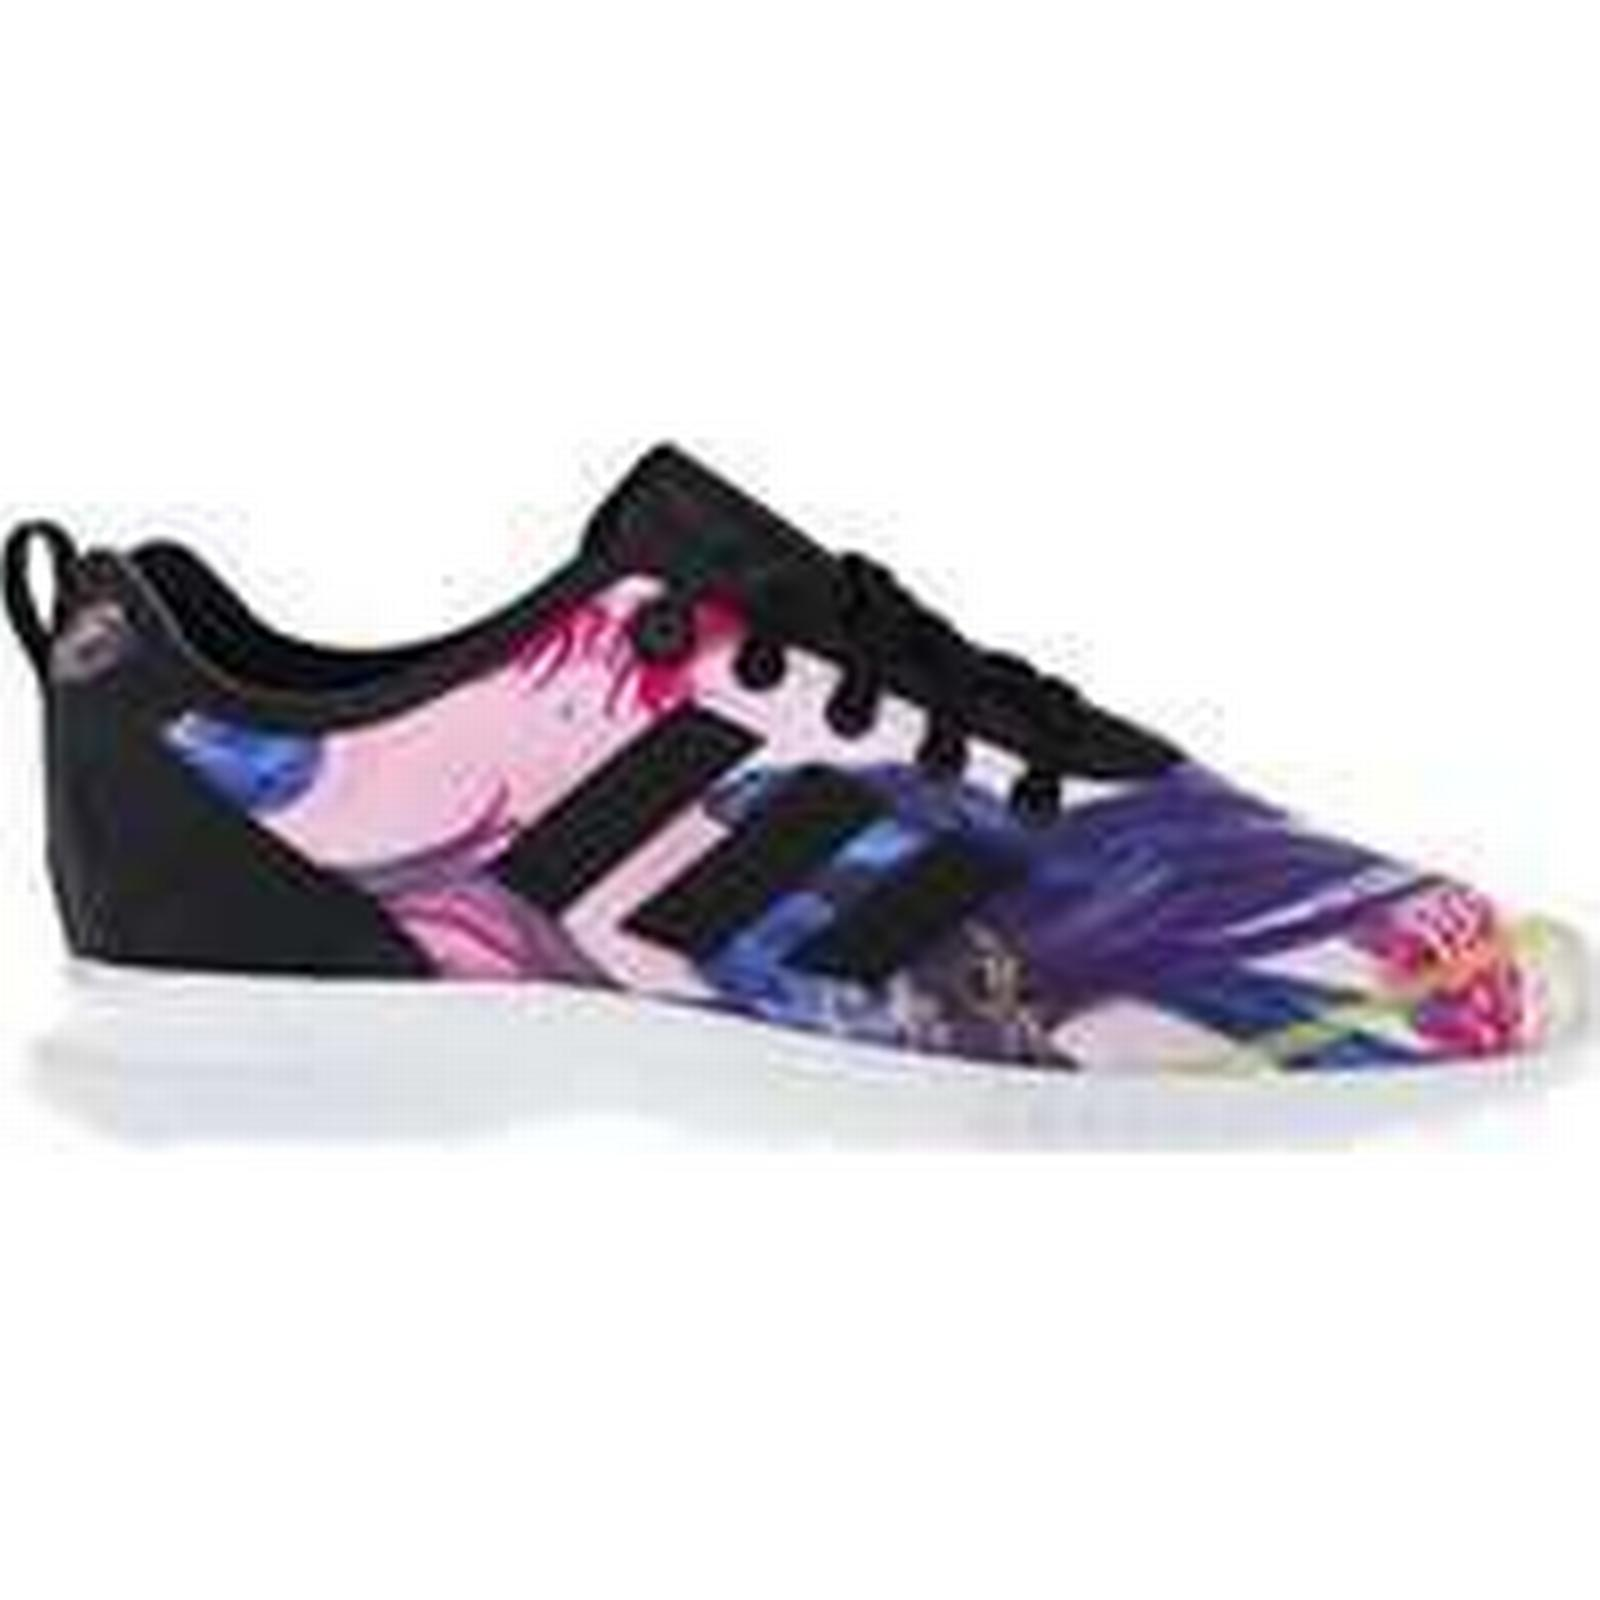 ba84cd64018a Spartoo.co.uk adidas ZX Flux Flux Flux Smooth women s Shoes (Trainers) ...